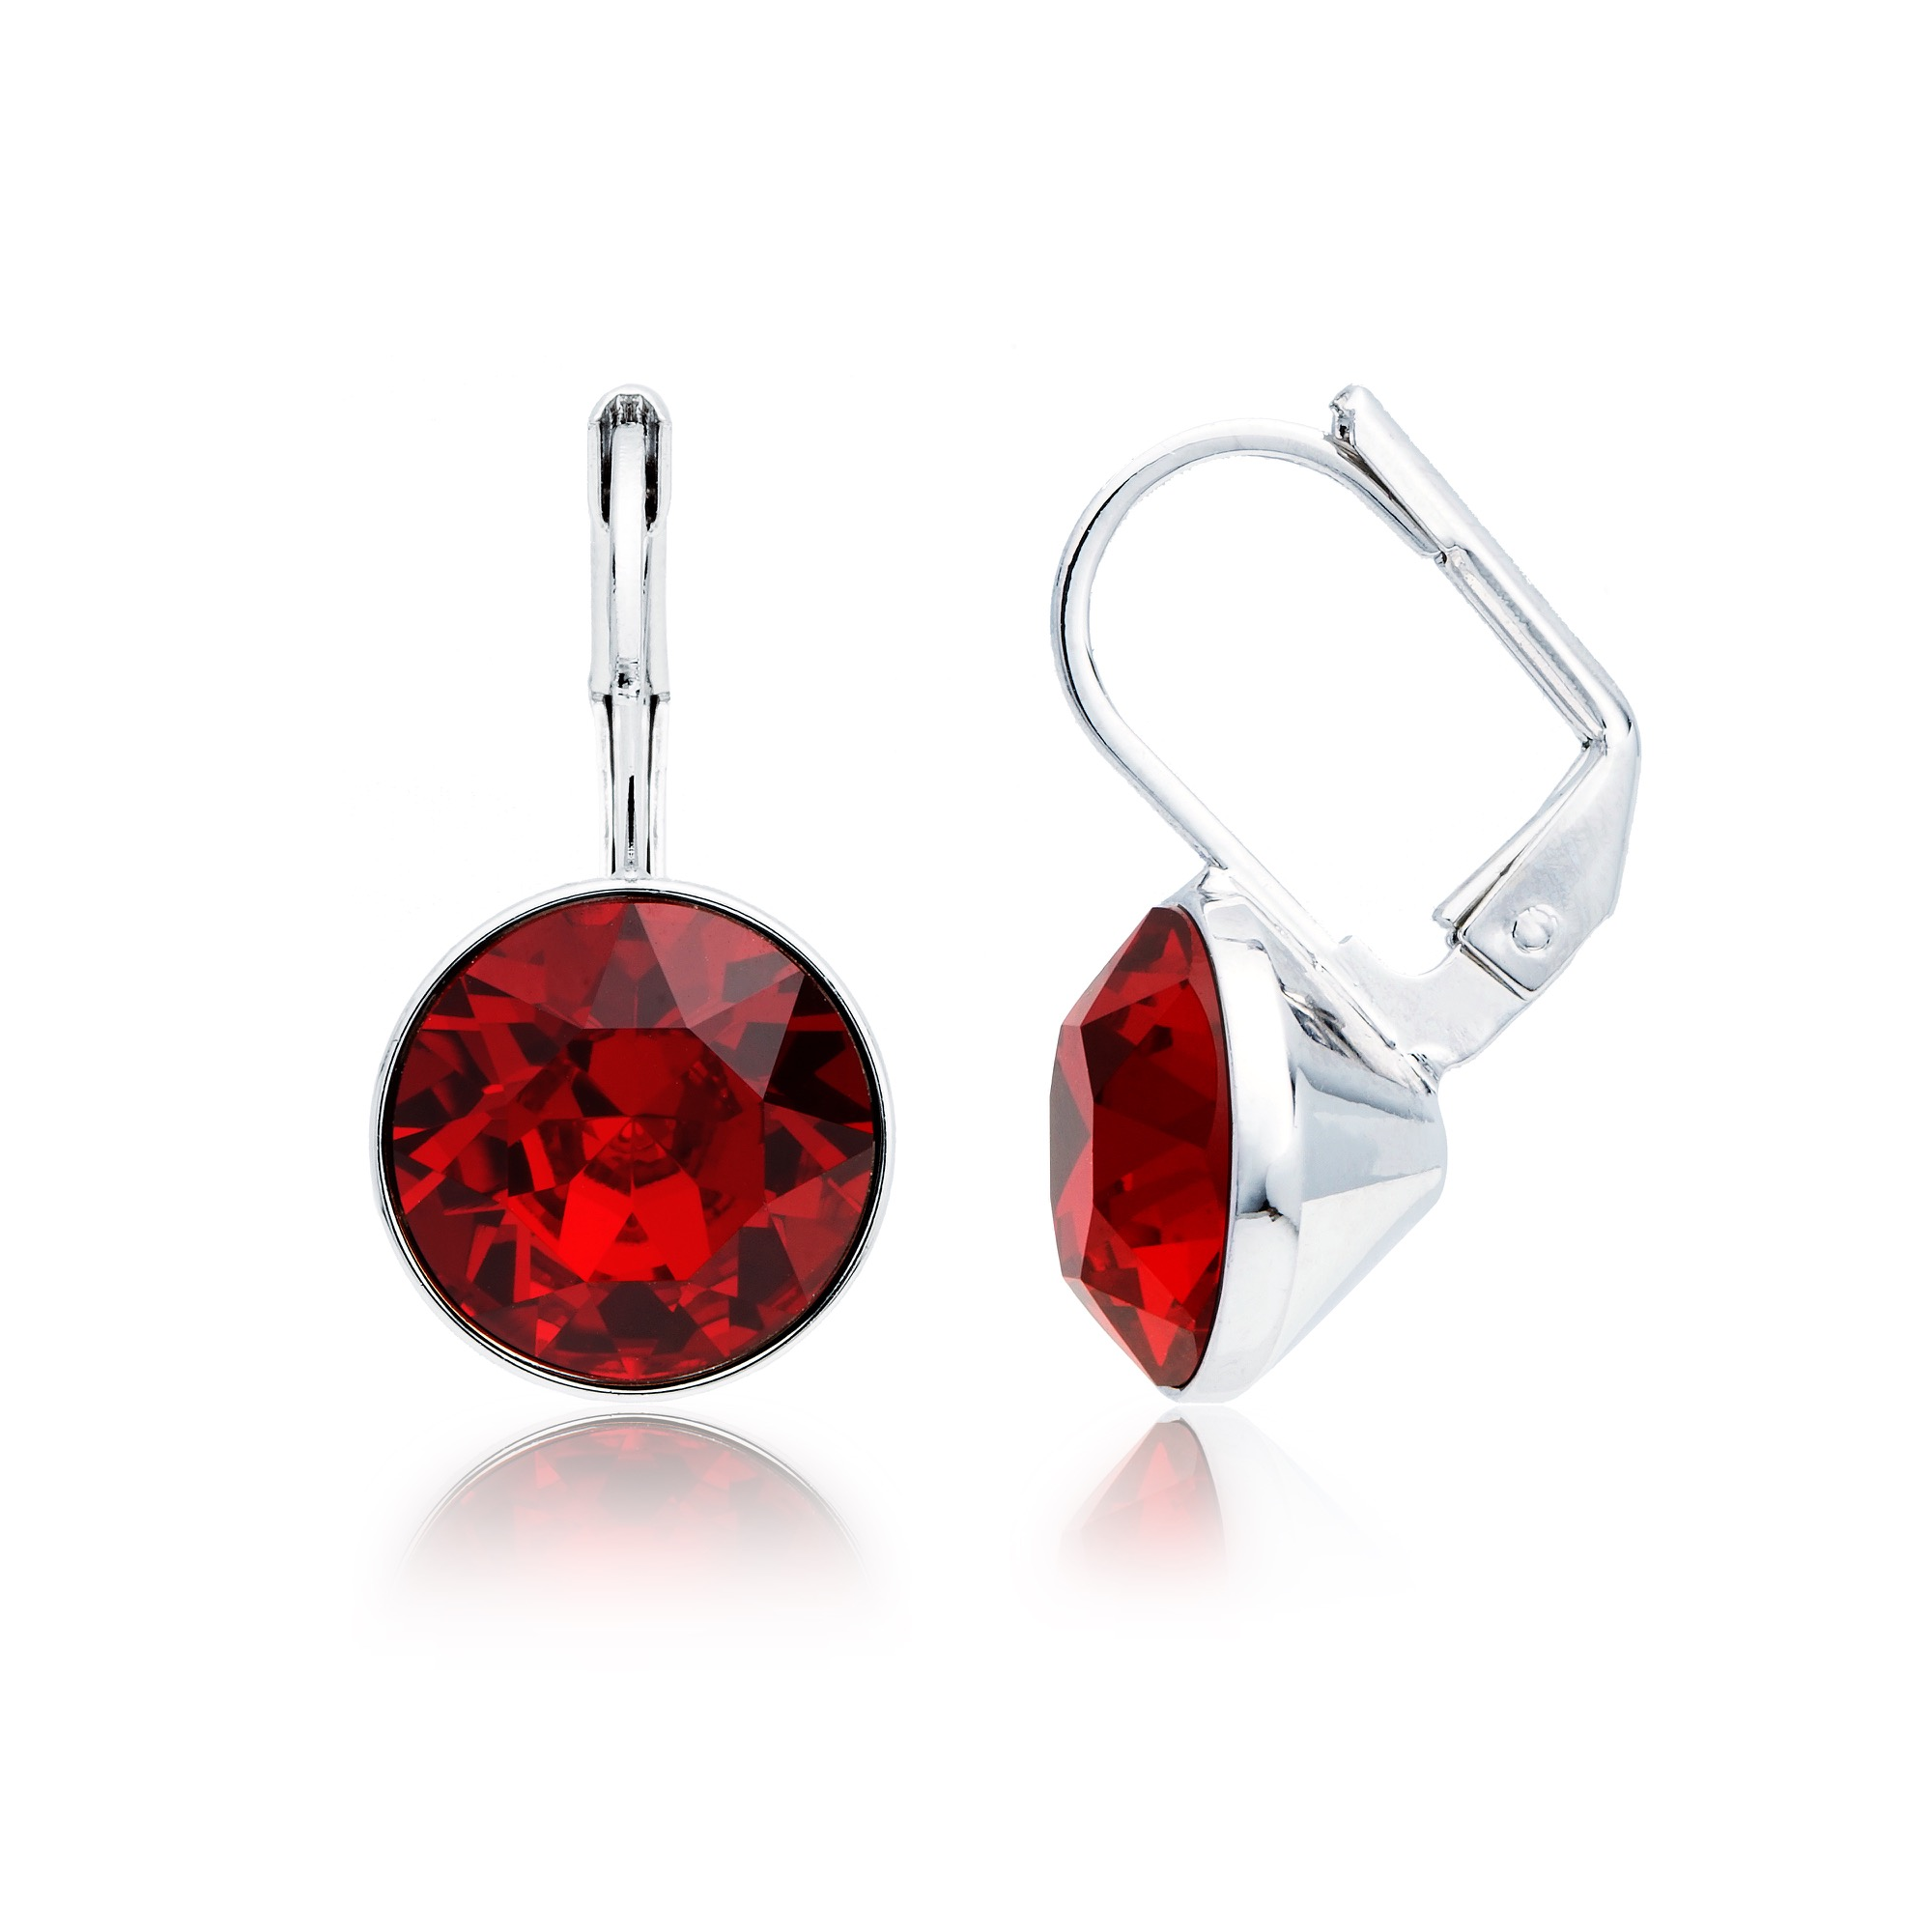 95c46a808 Bella Earrings with 4 Carat Ruby Swarovski® Crystals Rhodium Plated